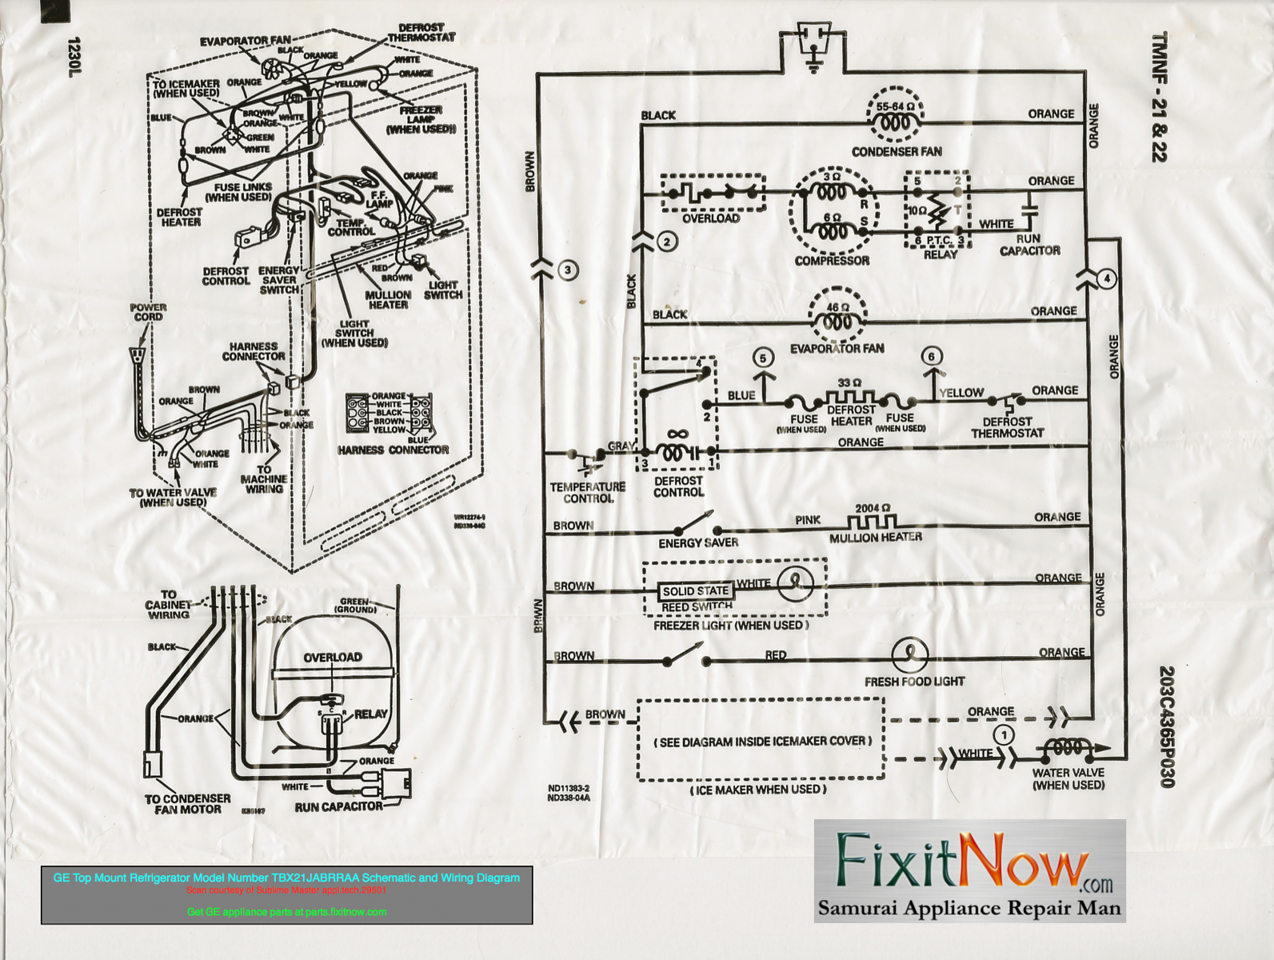 4904374061_e8eb3df6c6_o X2 appliance wiring diagrams appliance wiring diagram bosch Whirlpool Refrigerator Model Numbers at eliteediting.co